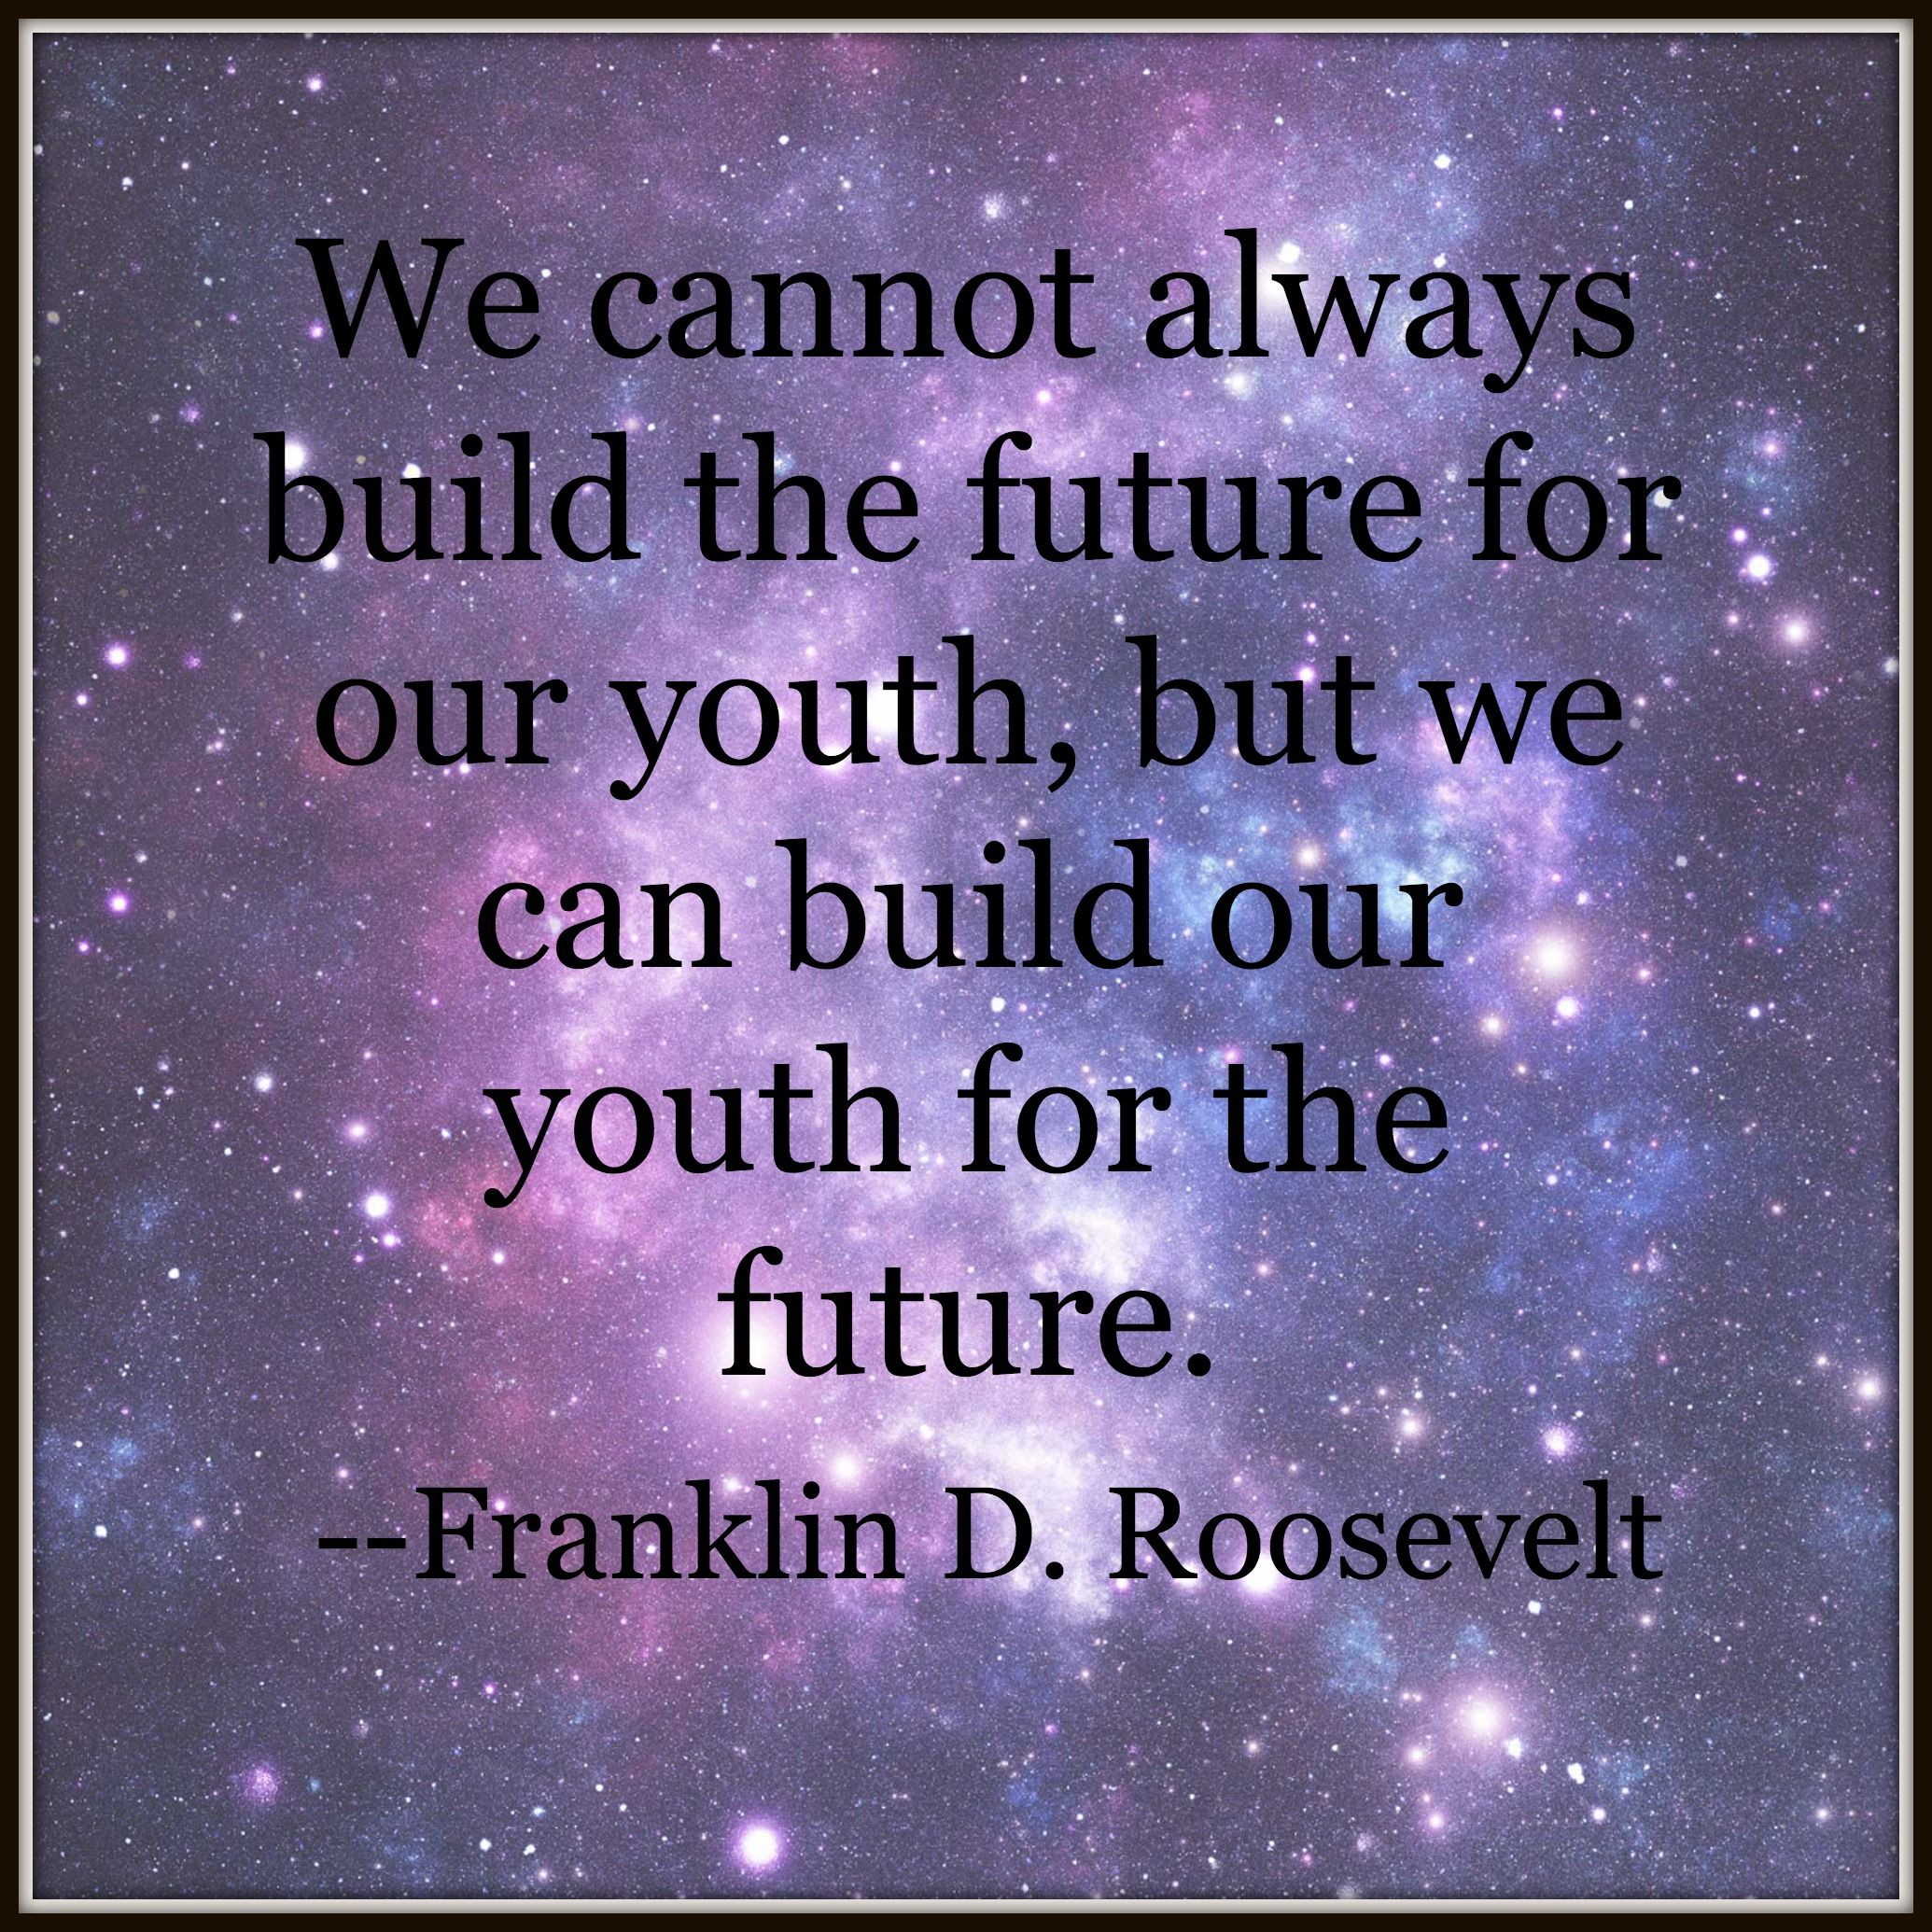 We Cannot Always Build The Future For Our Youth But We Can Build Our Youth For The Future Powerful Words Thoughts Quotes Education Quotes